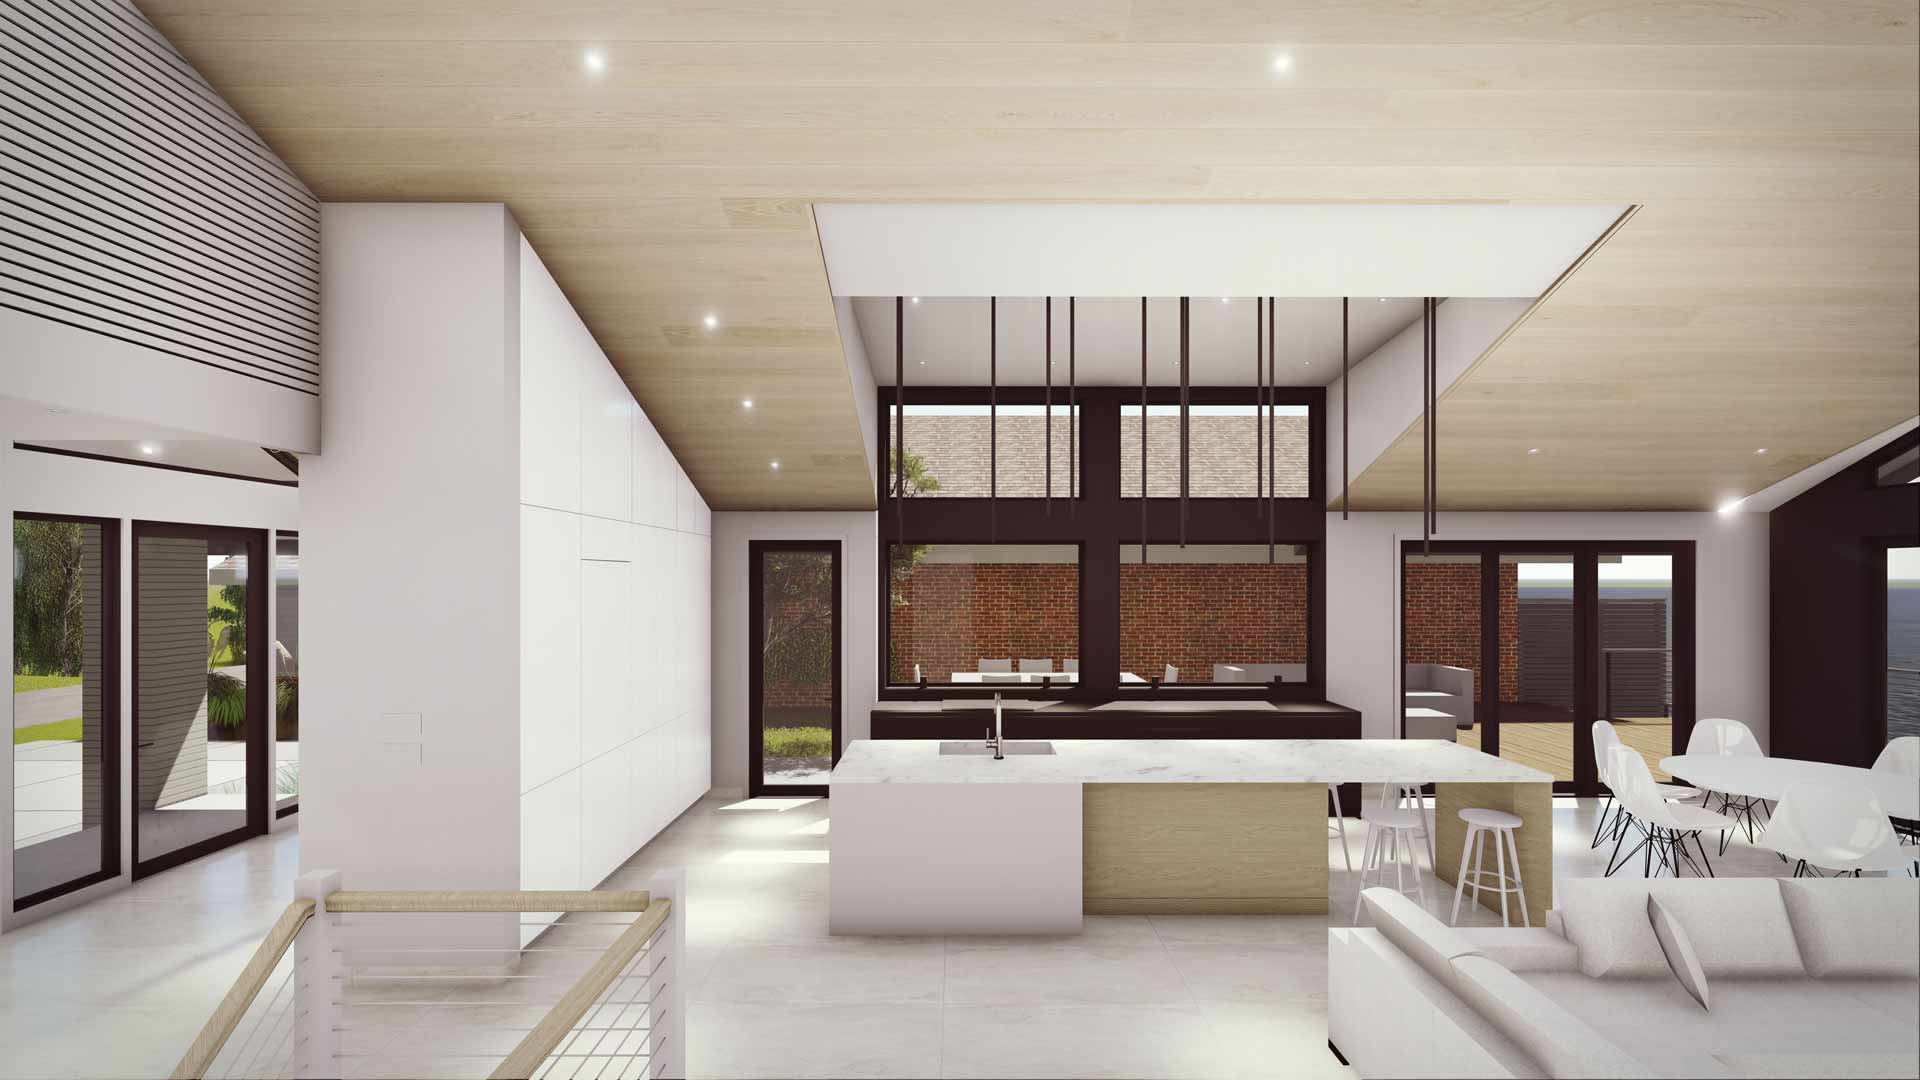 Interior Rendering of private entry, kitchen, dining, living room space overlooking lake - Modern Lakehouse Renovation - Clearwater